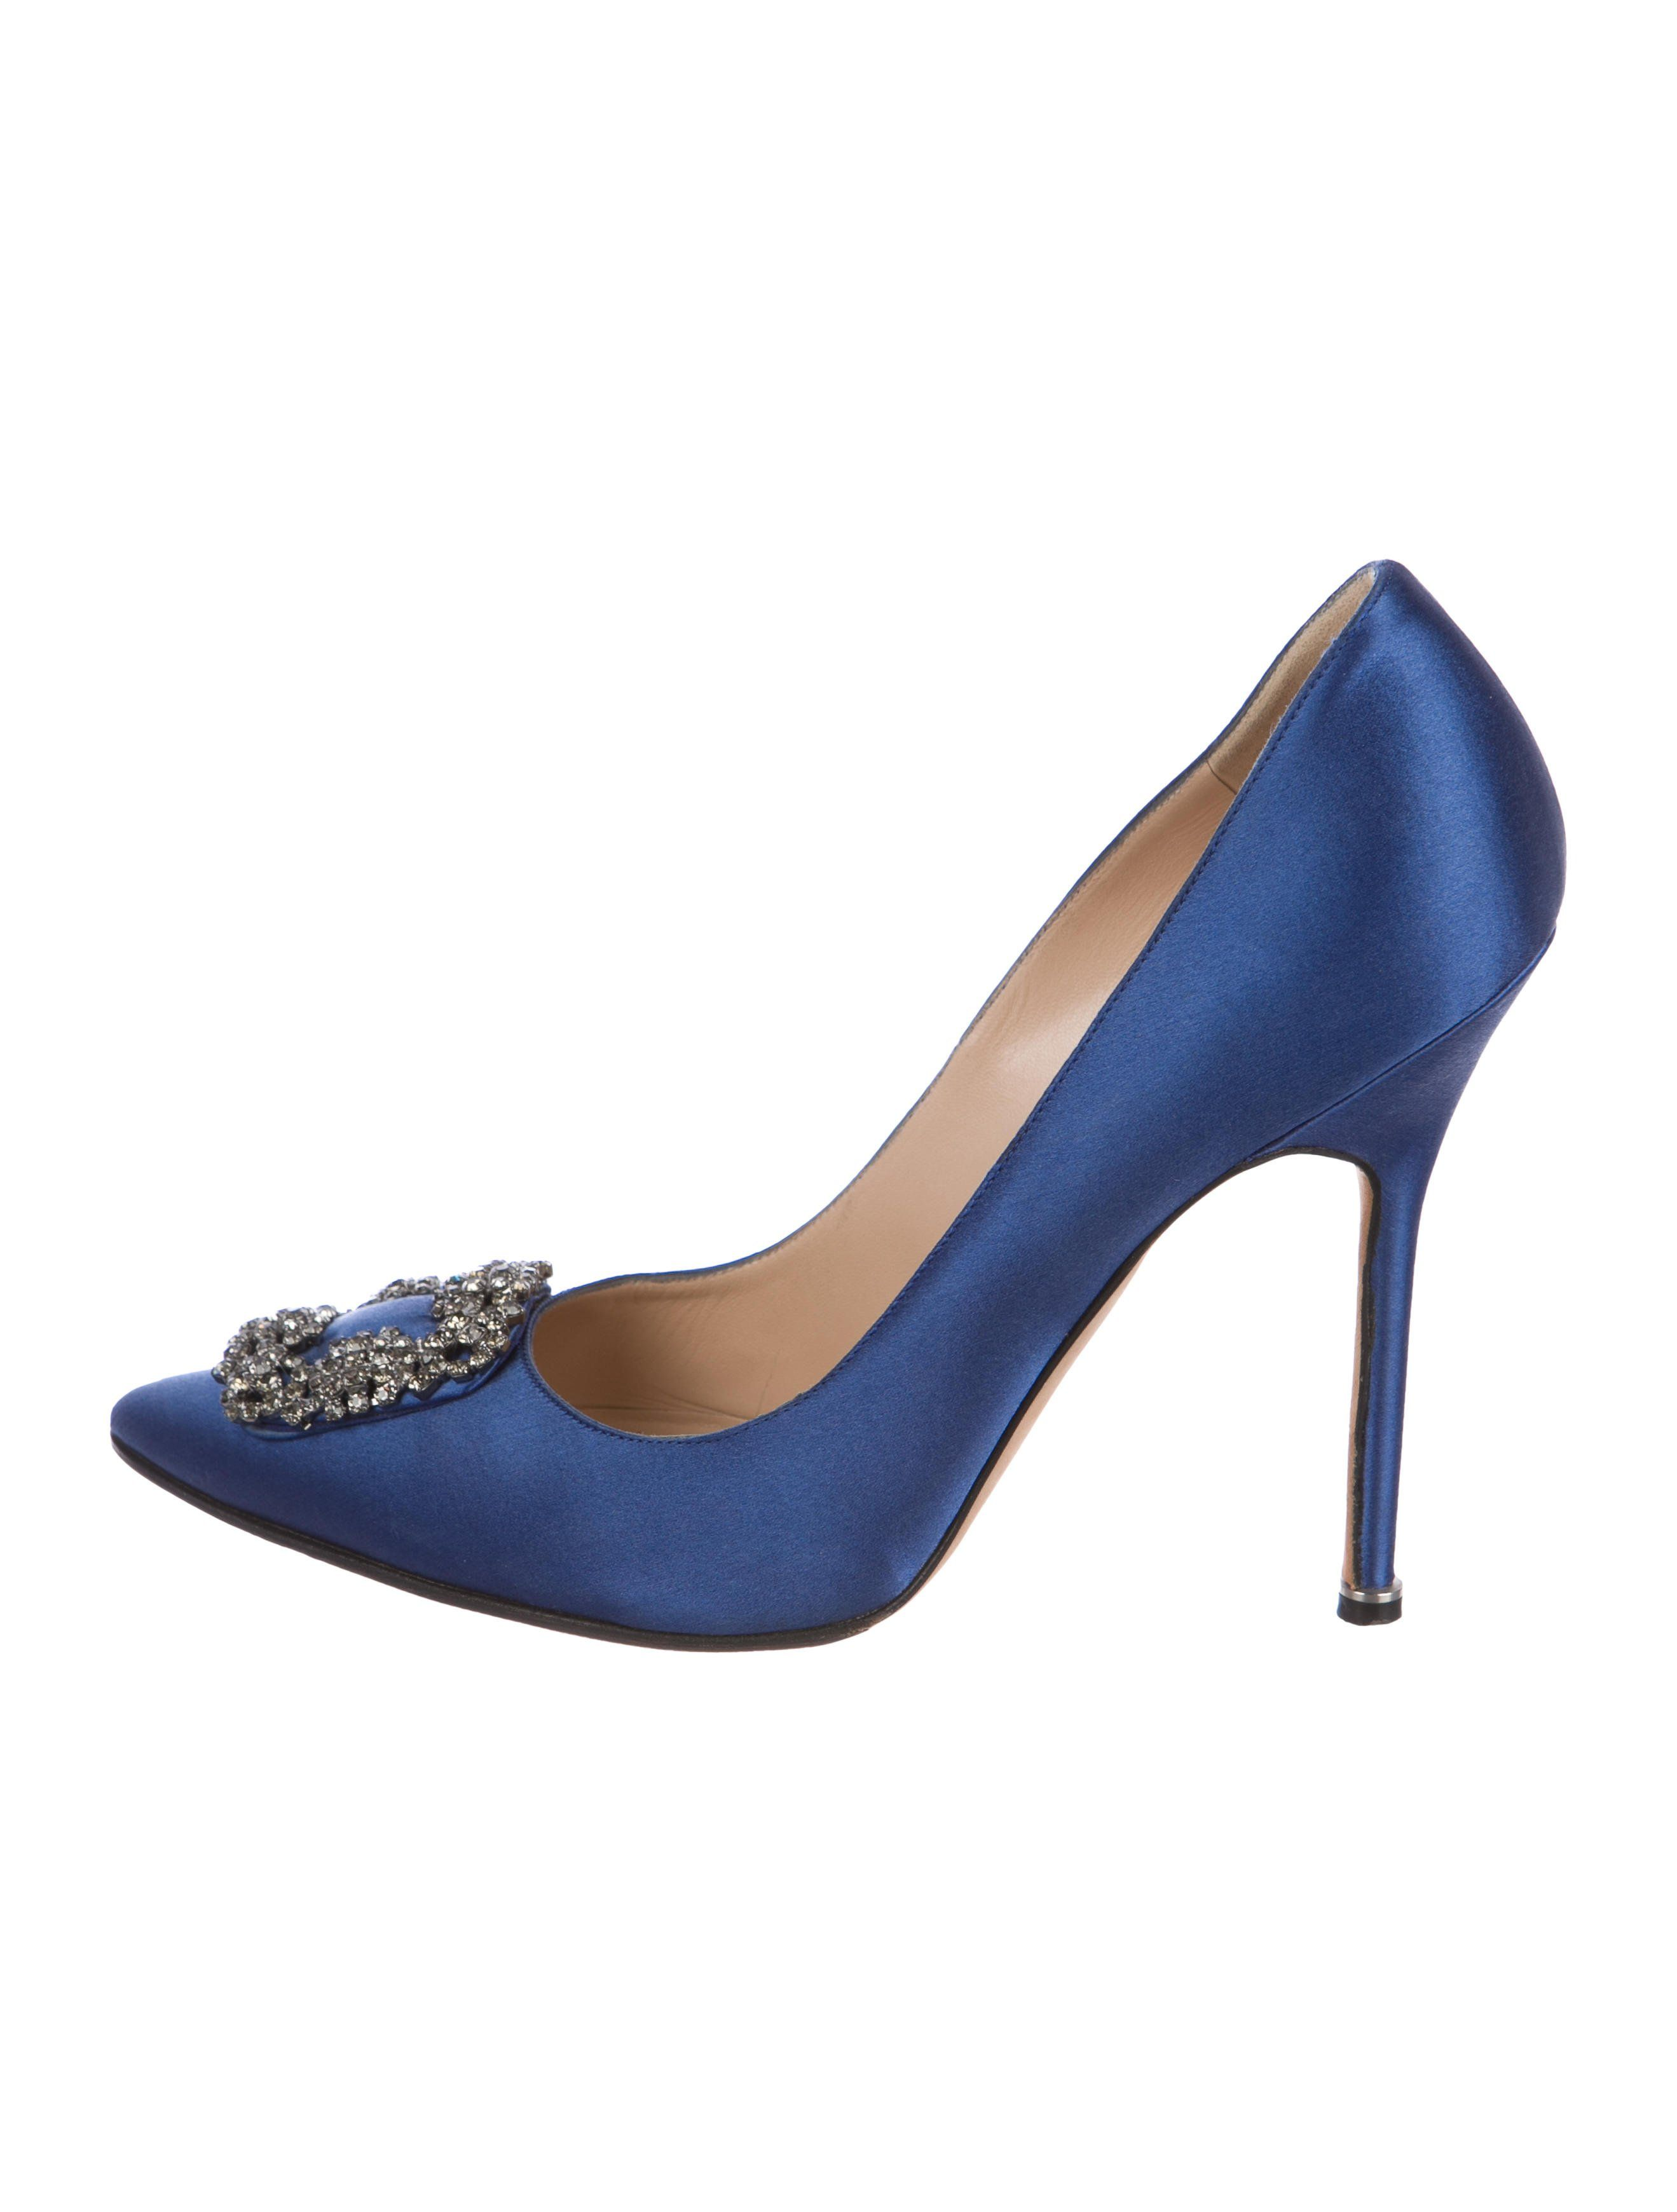 2072107dbde8e Blue satin Manolo Blahnik Hangisi pointed-toe pumps with crystal  embellishment at vamps and covered